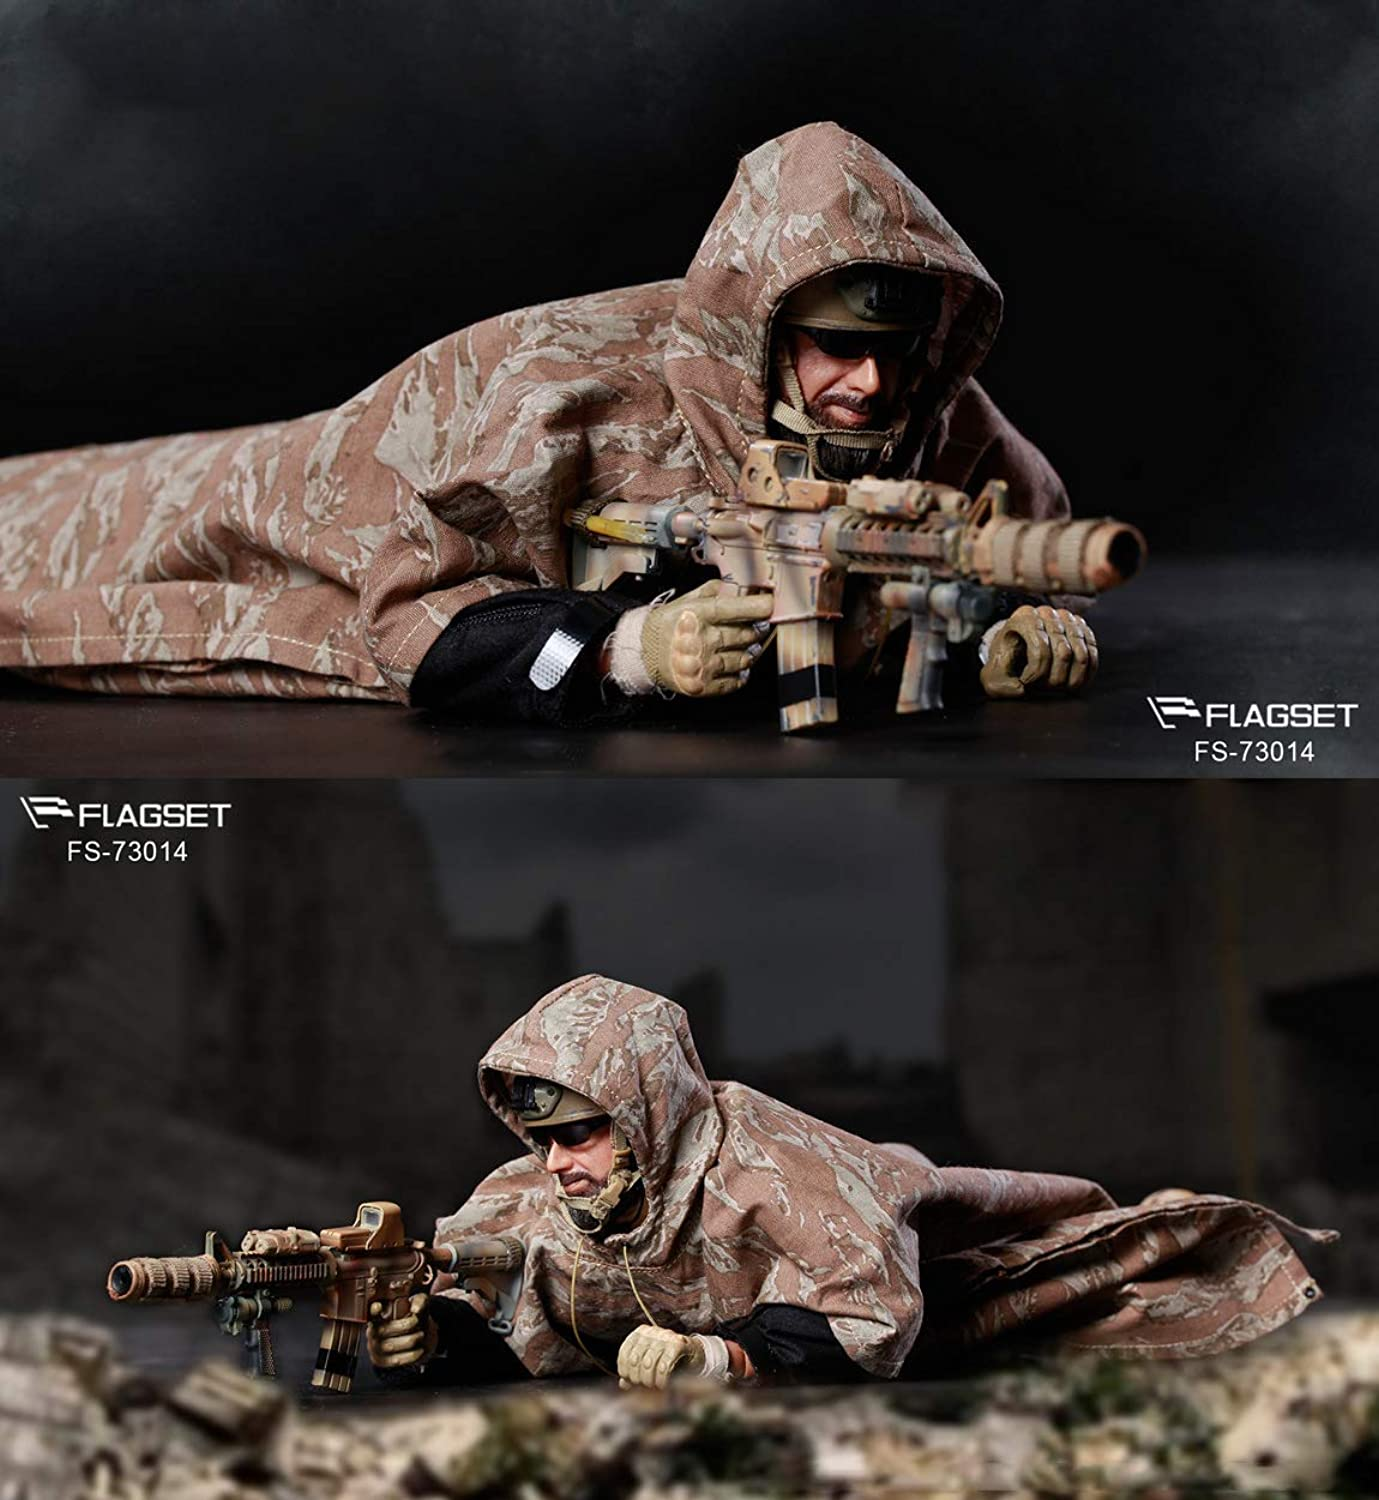 FLAGSET 1 6 Scale Modern Army Military Male Soldier Action Figures, 12in Flexible PVC Model Set (FS-73014 - Ranger Regiment)